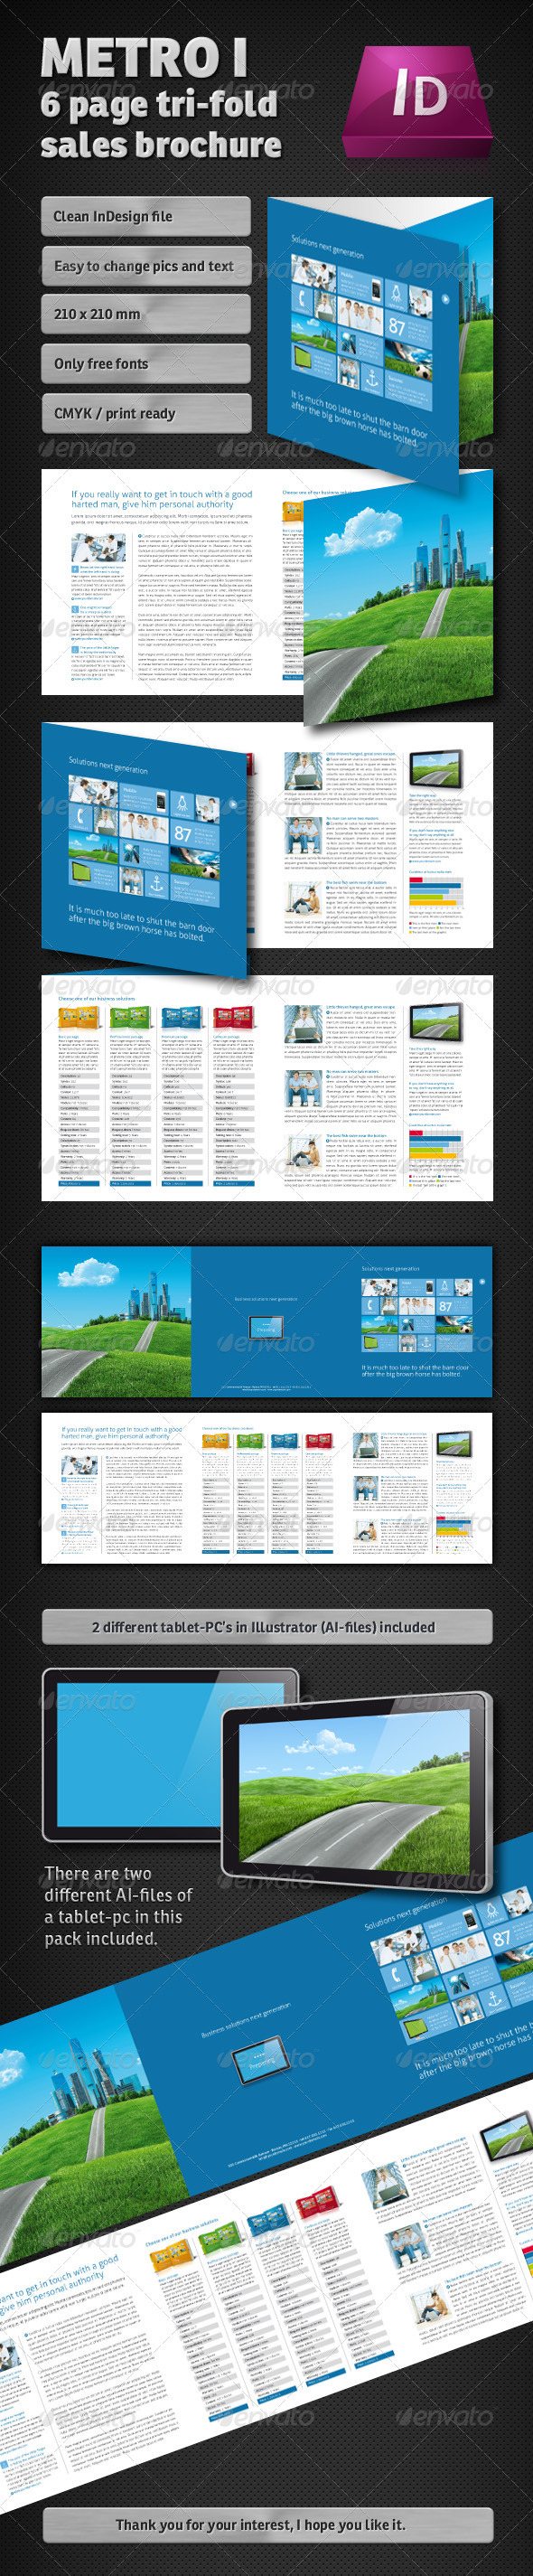 Metro I – 3 Page Tri-fold Sales Brochure - Corporate Brochures